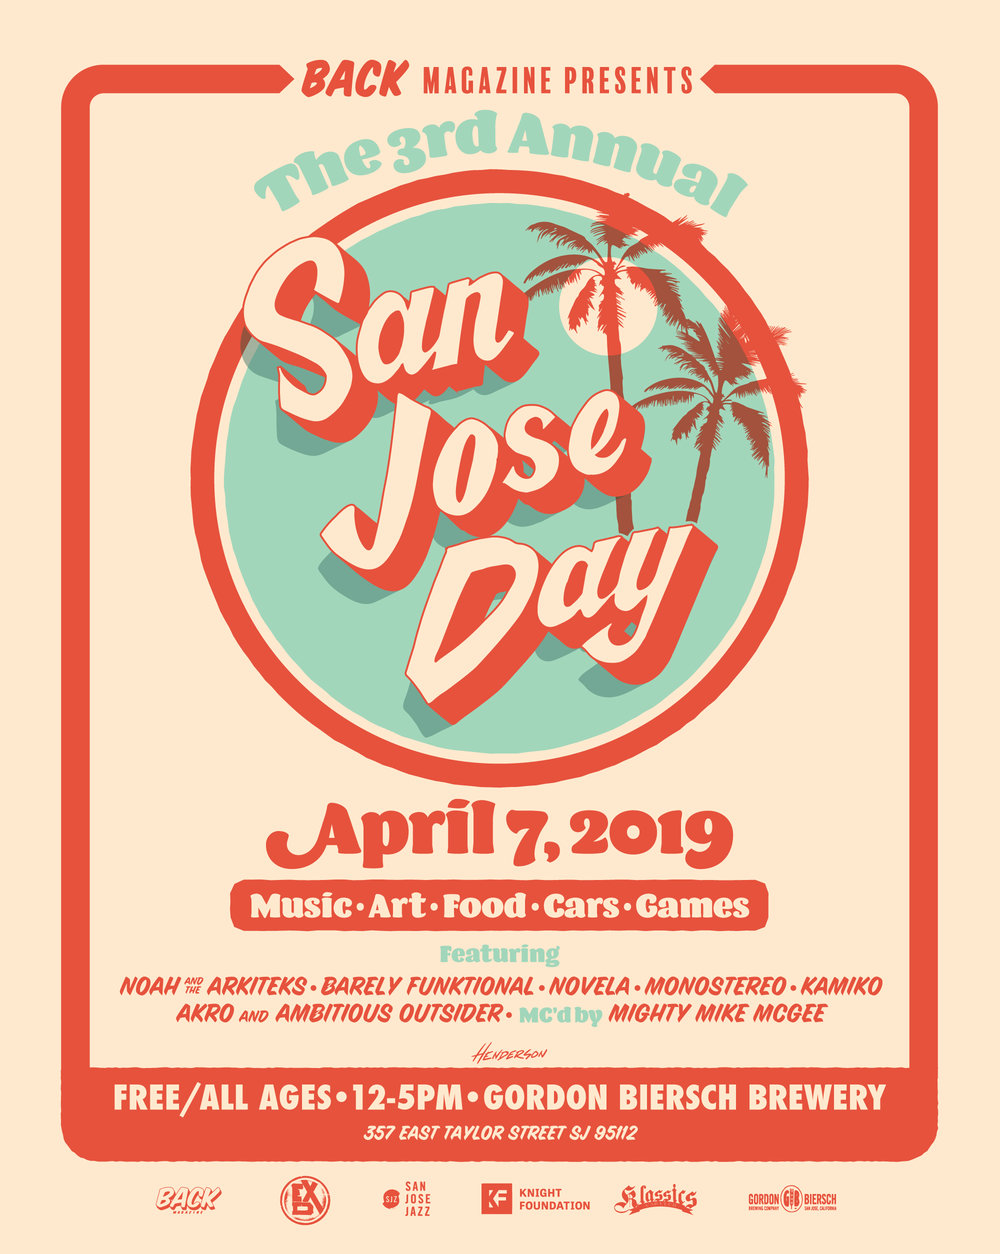 TheThird Annual San Jose Day-You're Invited! - San Jose Day, presented by BACK Magazine, was selected to be part of the Knight Foundation's #SpeakUpSanJose initiative to fund 20 organizations to foster community engagement.The Third Annual SJ Day will be hosted at Gordon Biersch Brewing Company. We embrace the cities diversity and pay homage through live art, local performing bands, local brands and businesses, classic cars, food, beer, and more!This event is FREE and for all ages! All are welcome!Click here to RSVP on Facebook now!